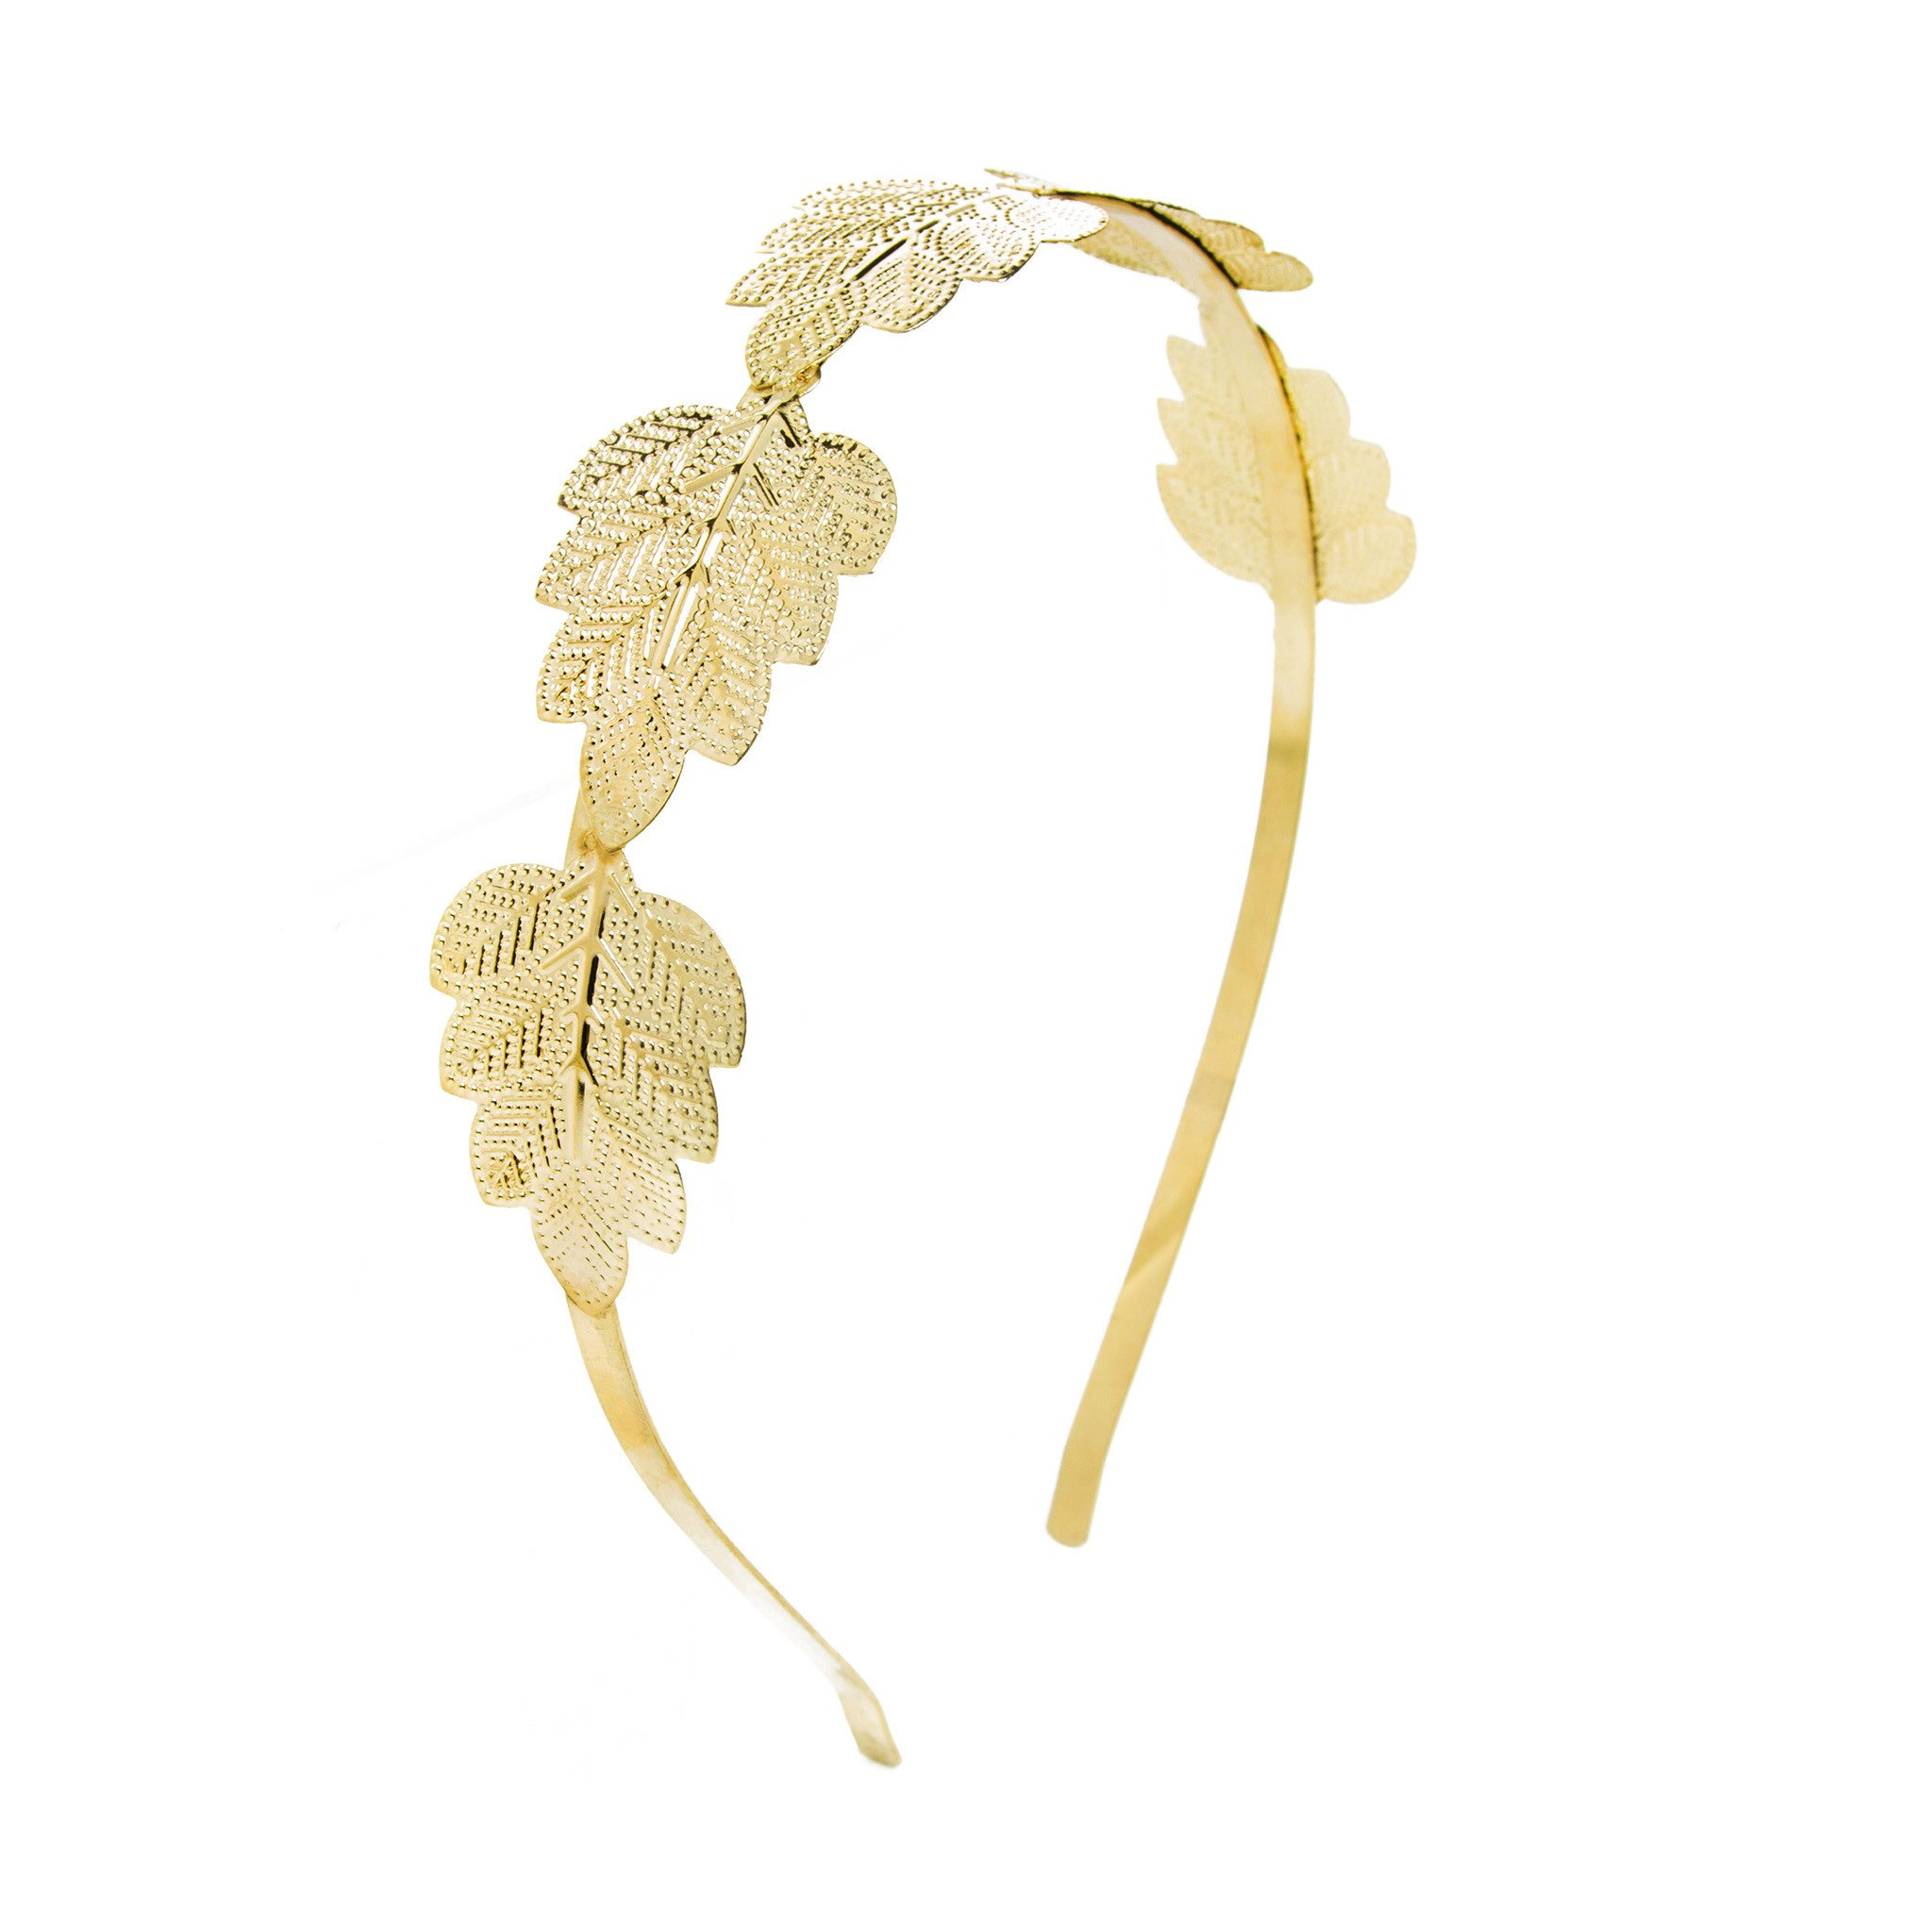 Olive Branch Headband – The Getty Store